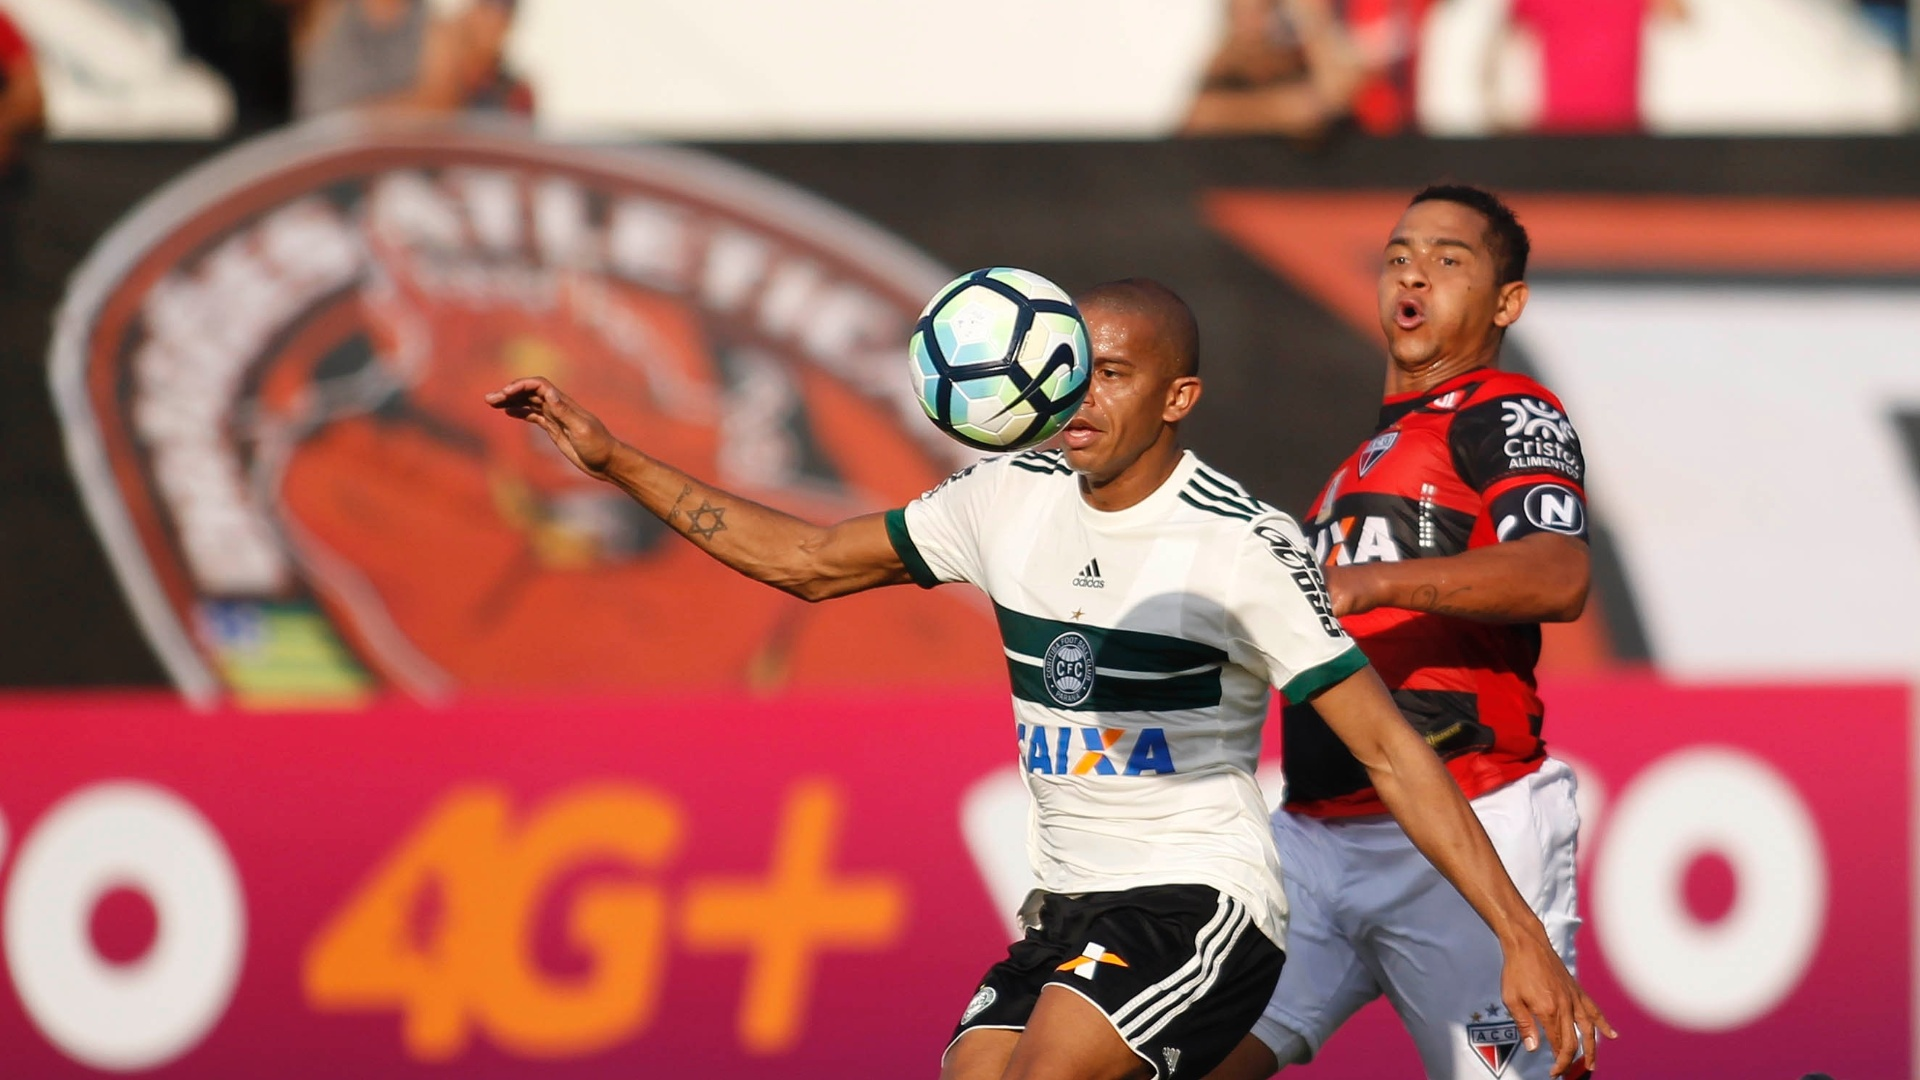 Walter, do Atlético-GO, disputa jogada com William Matheus, do Coritiba